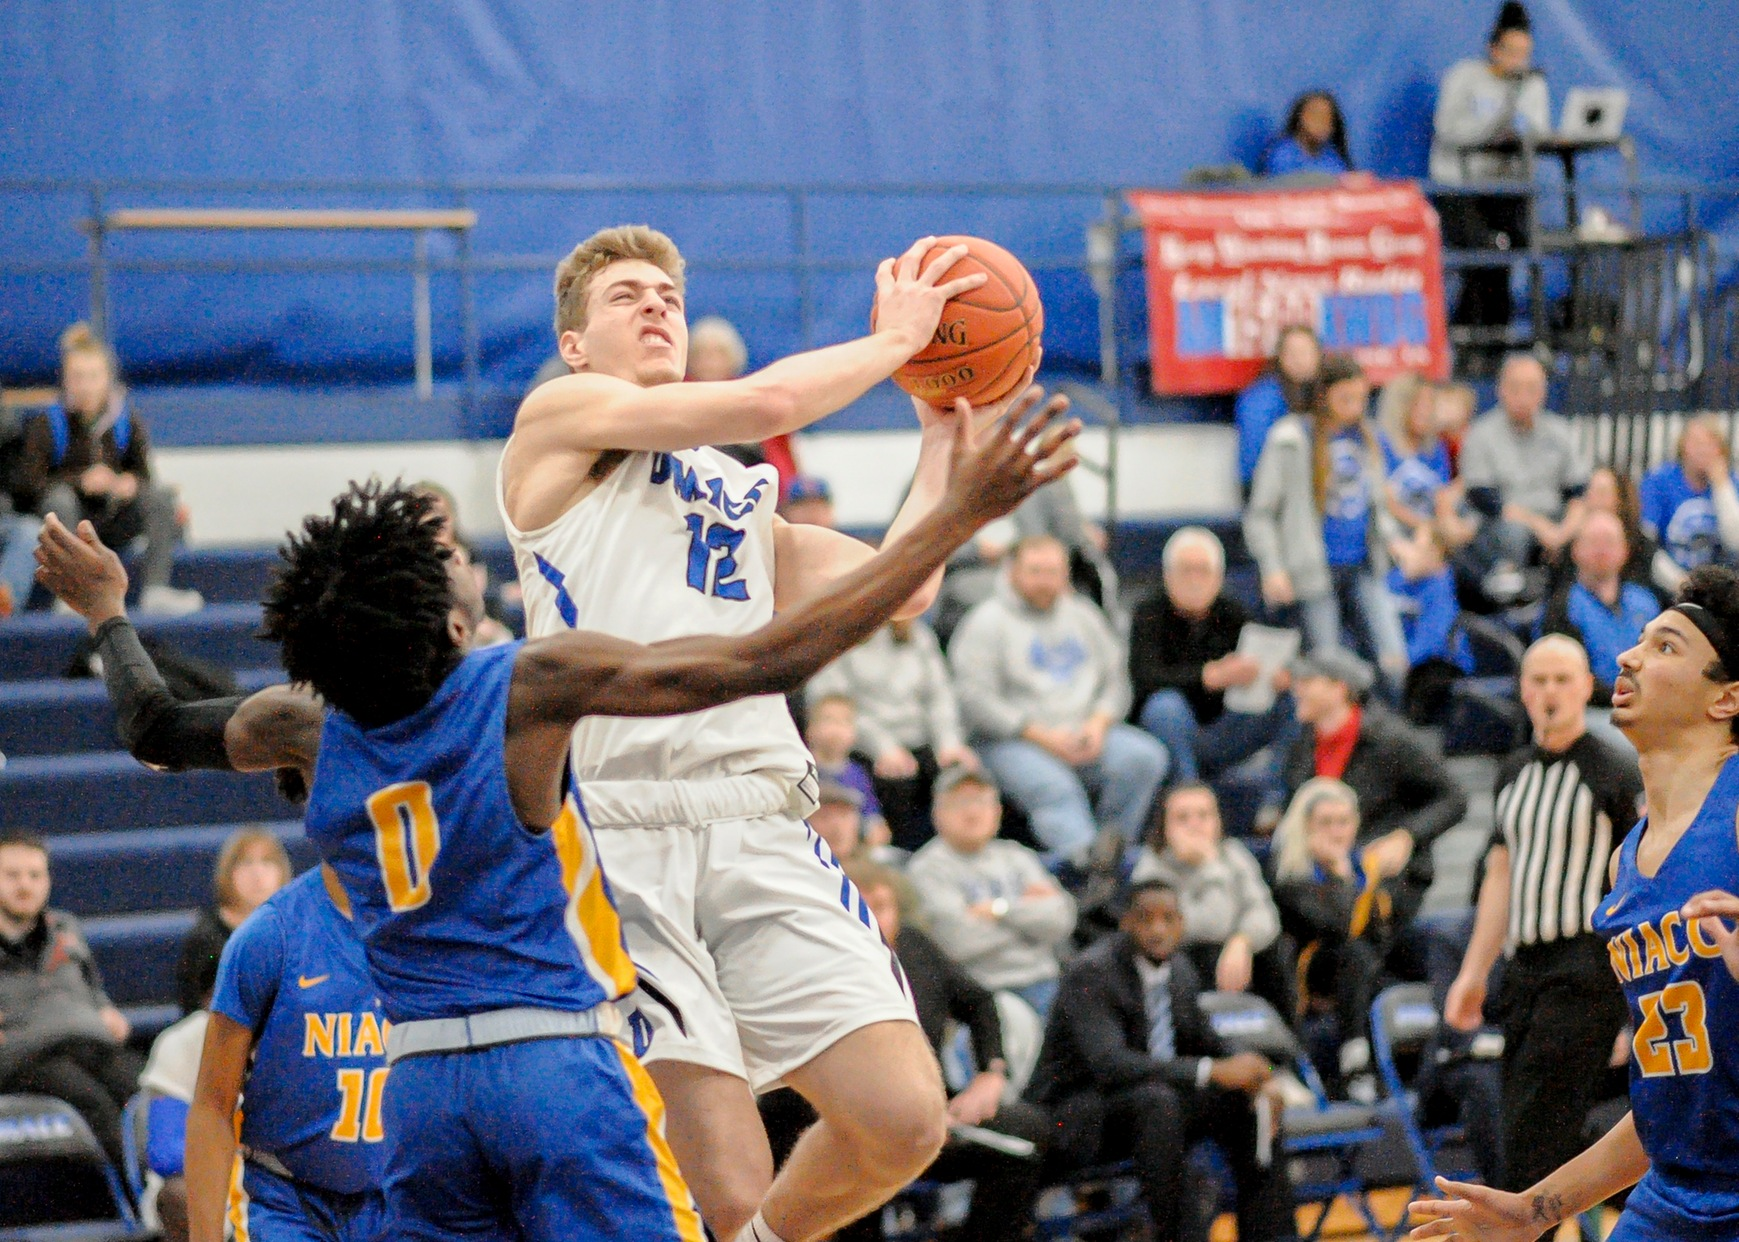 Fifth-ranked DMACC men's basketball team routs fourth-ranked NIACC, 107-63